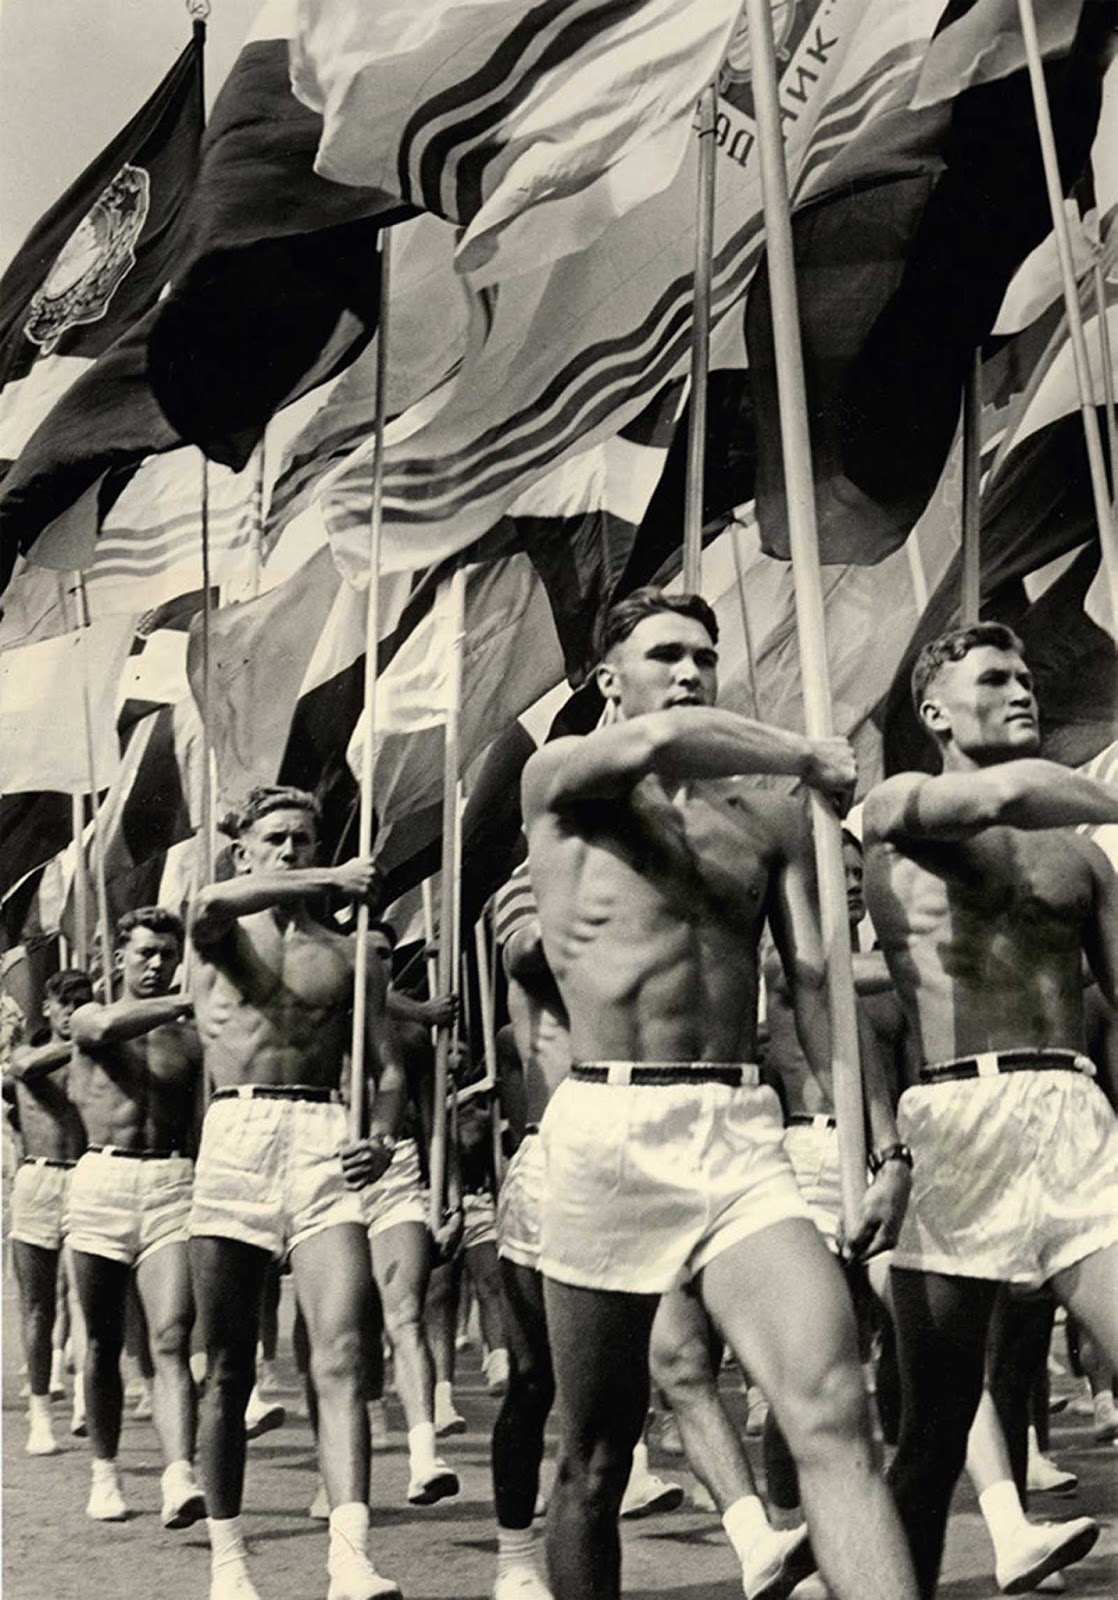 Sportsmen's Parade in Moscow, 1956. The best looking ones were put in the front for obvious reasons.